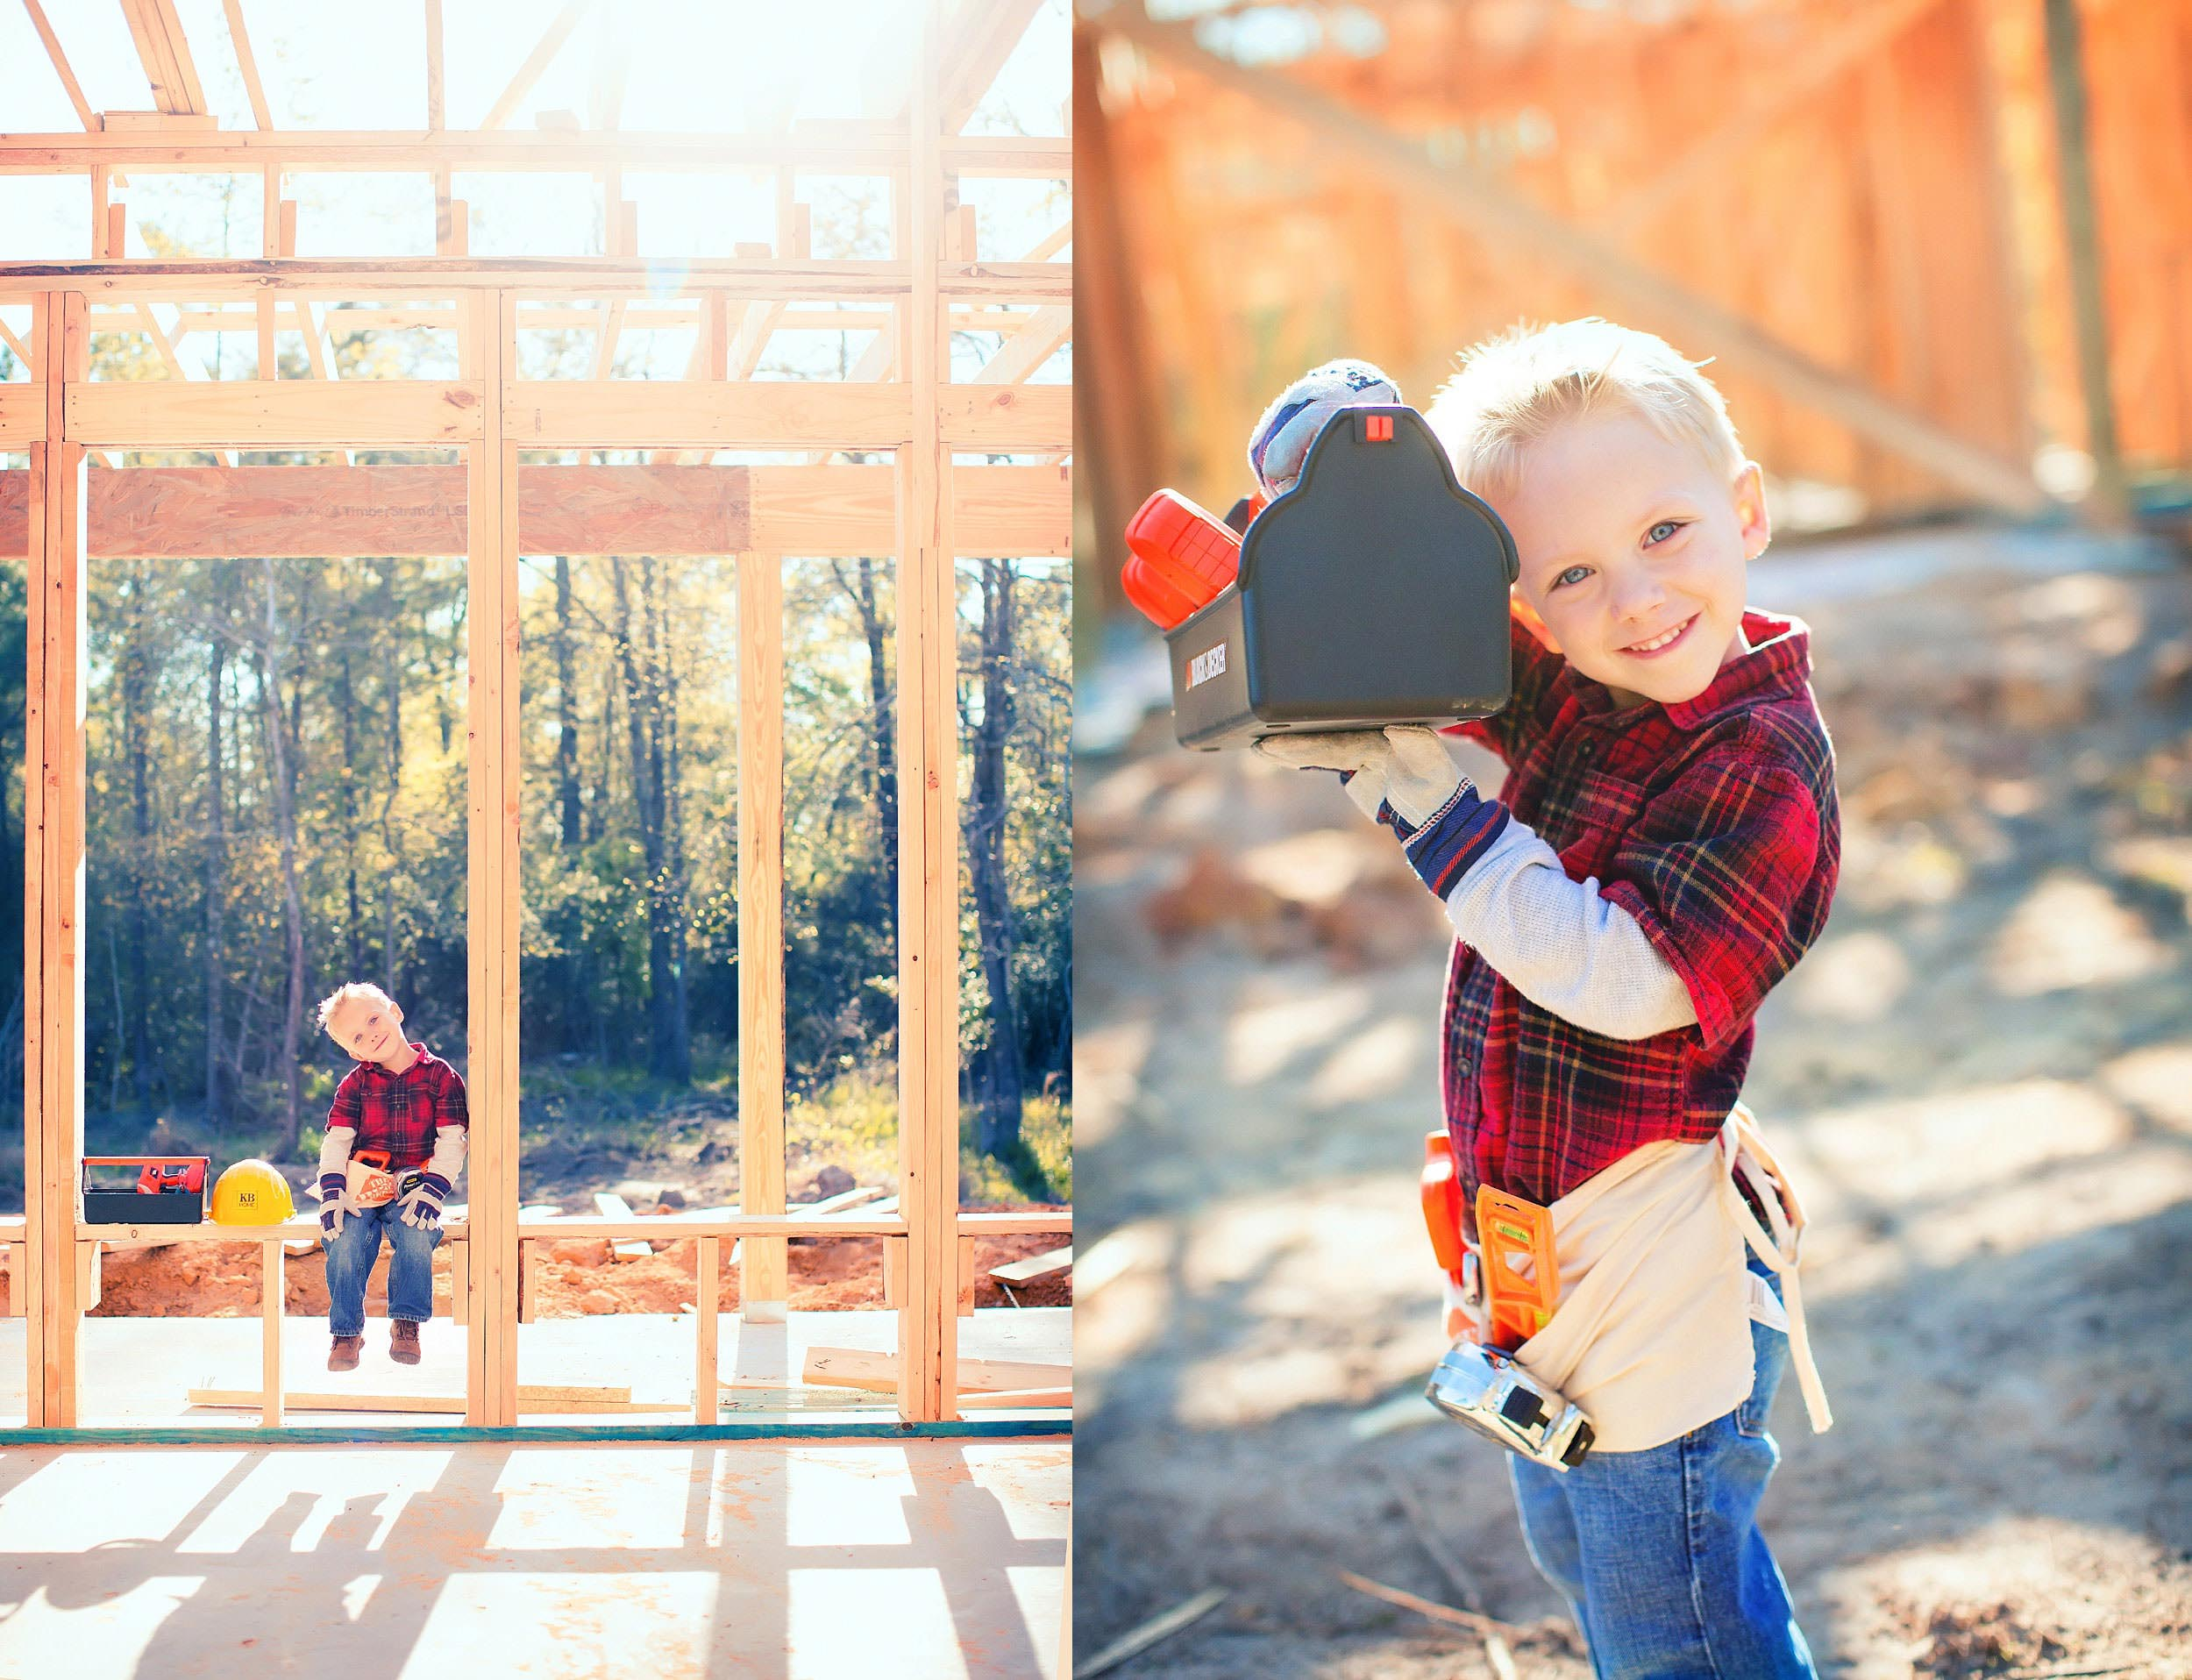 Photograph of little boy dressed as construction worker in framed house in The Woodlands, Texas.